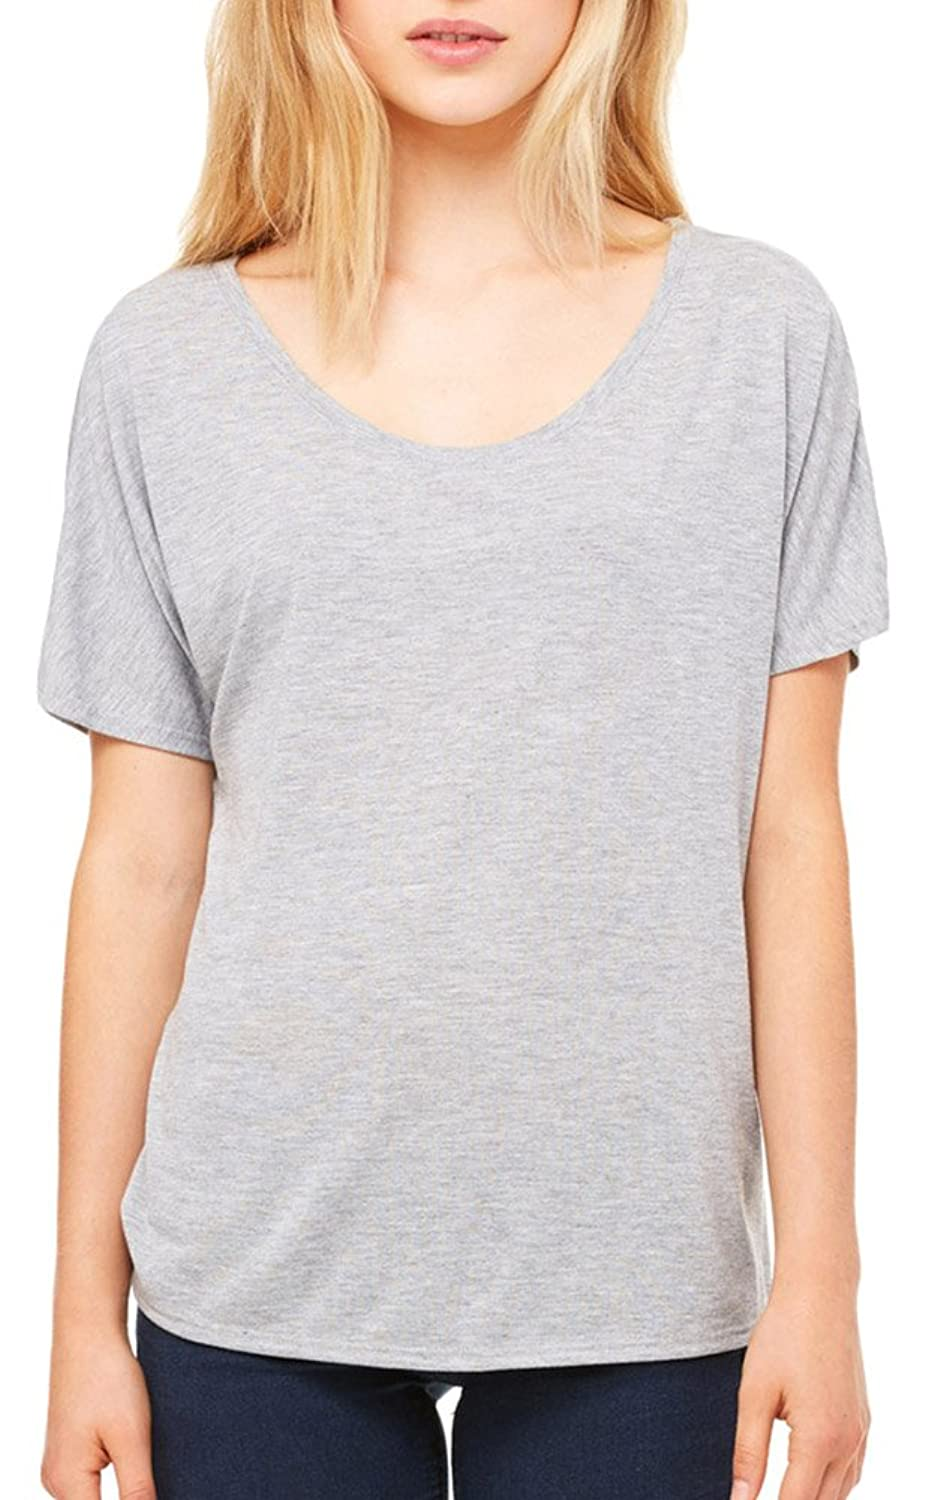 Bella + Canvas Womens Slouchy T-Shirt (8816) ATHLETIC HEATHER